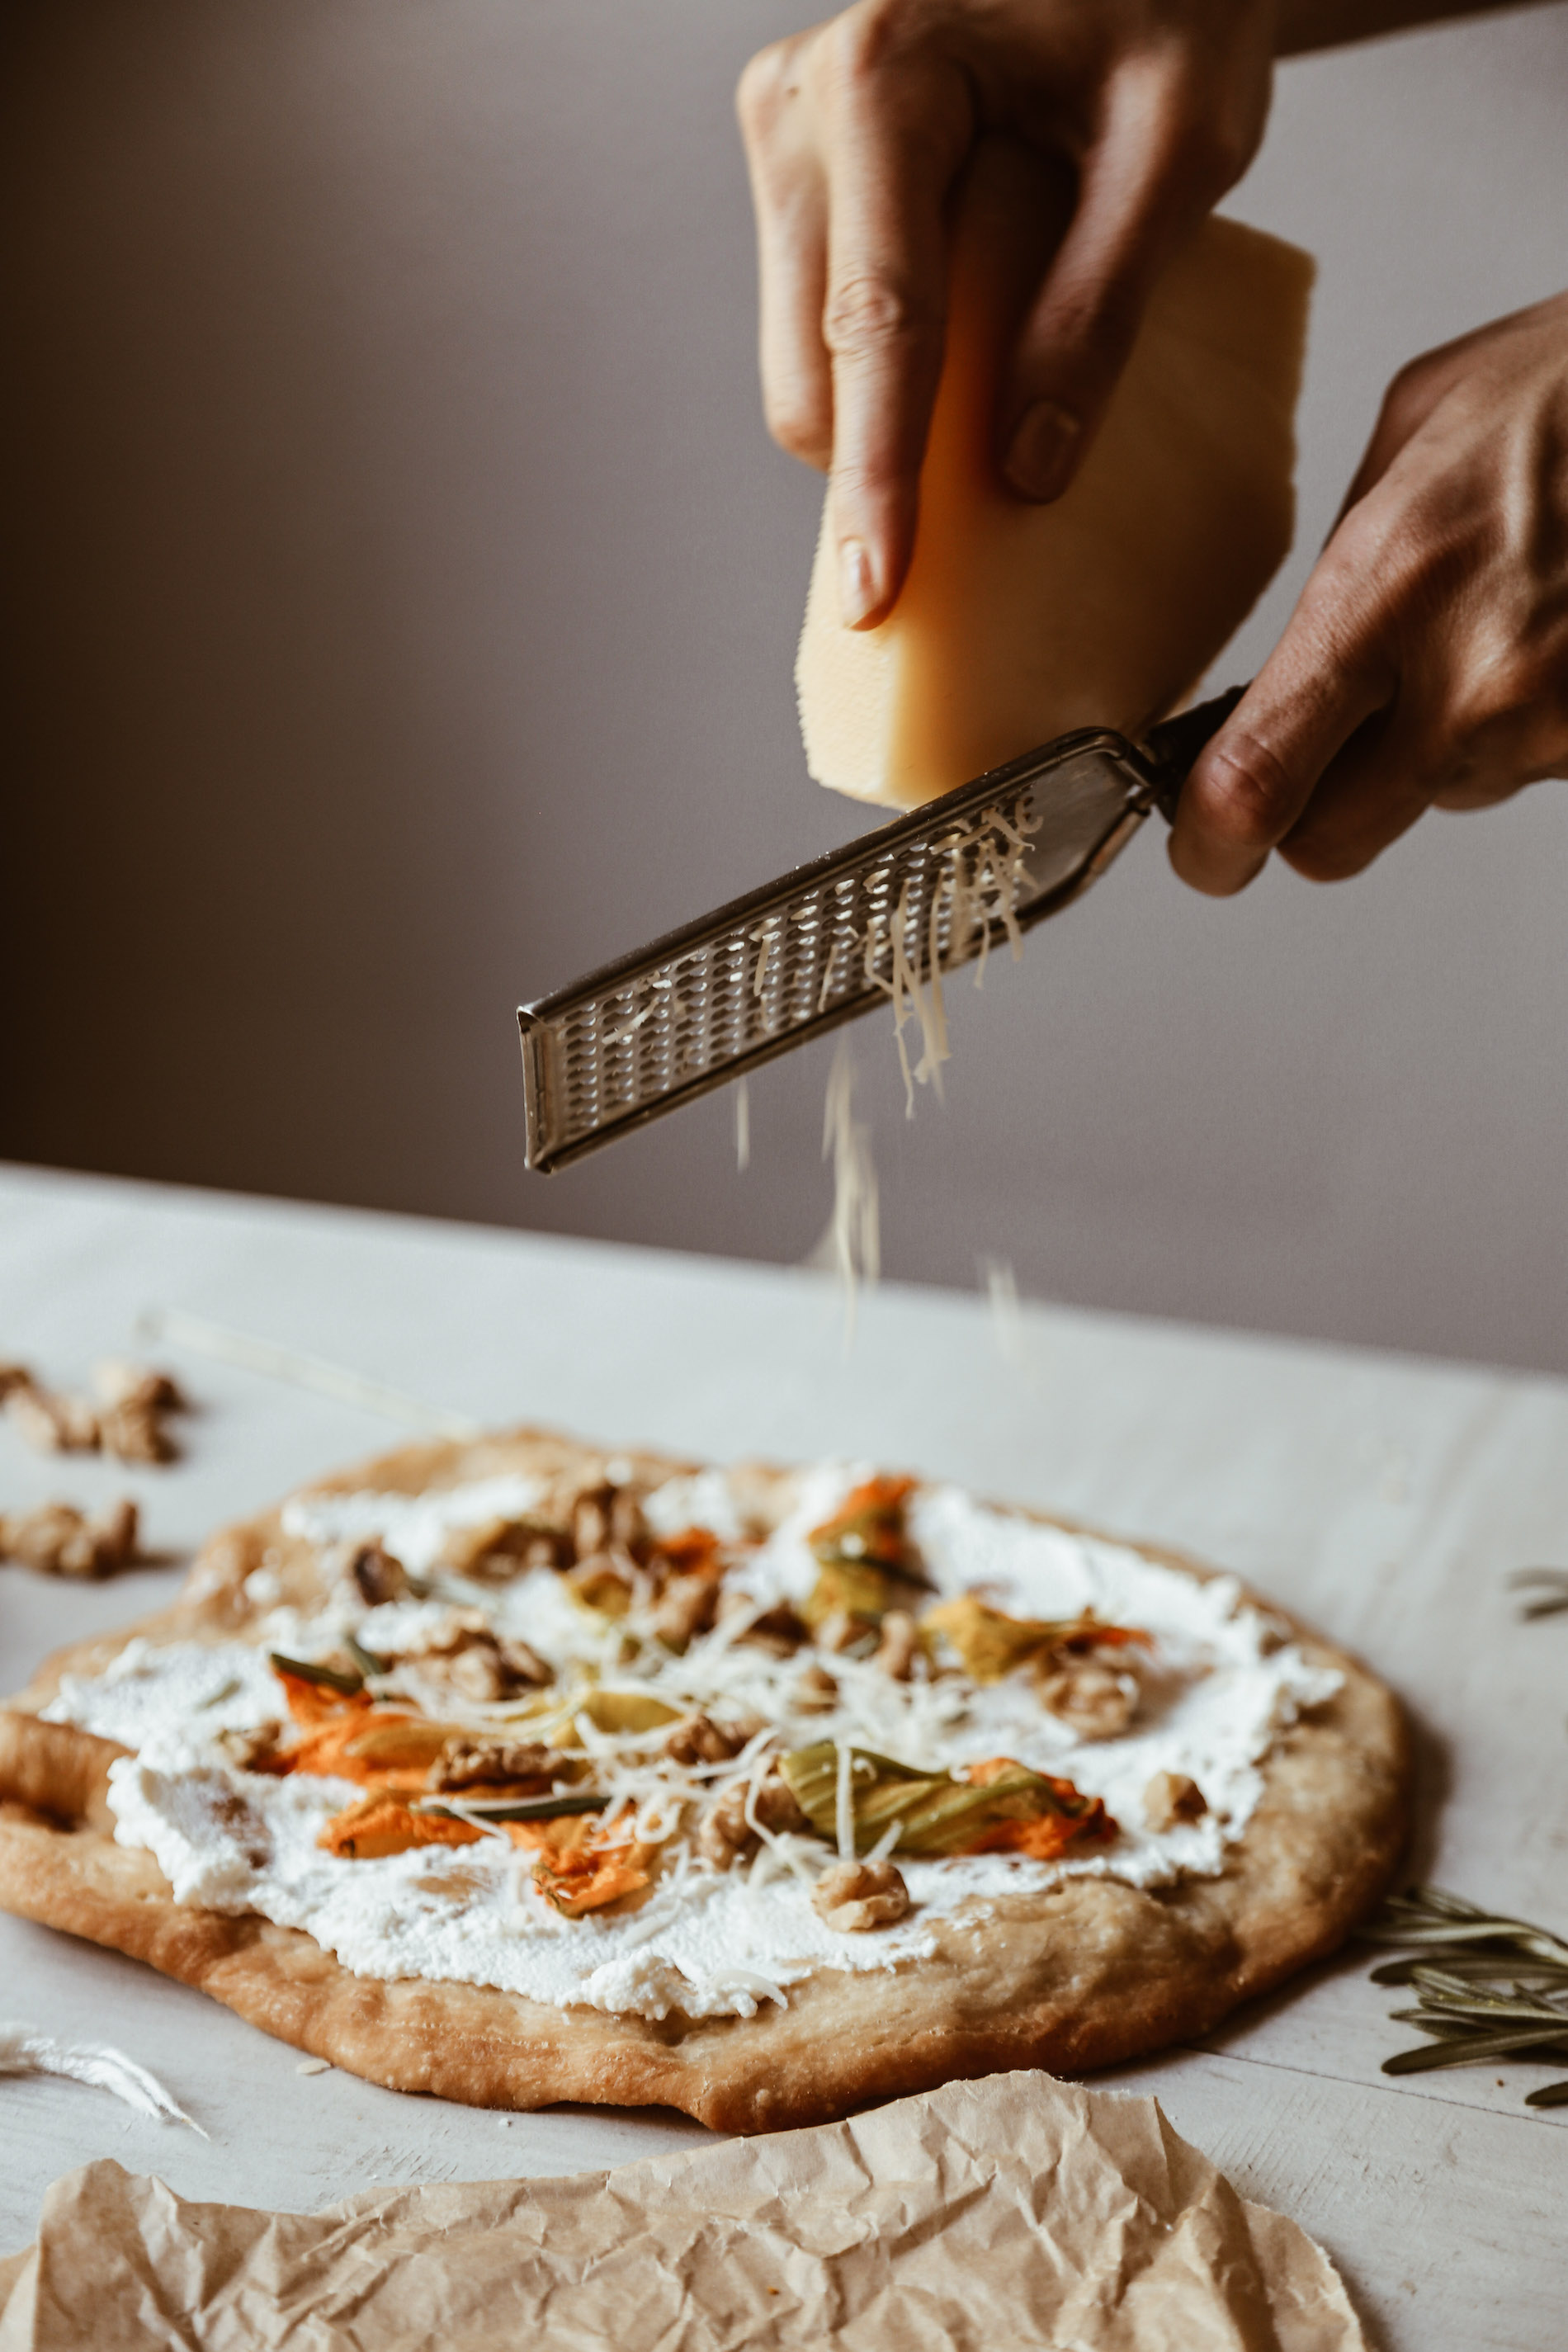 fried pizza with squash blossoms-8.jpg